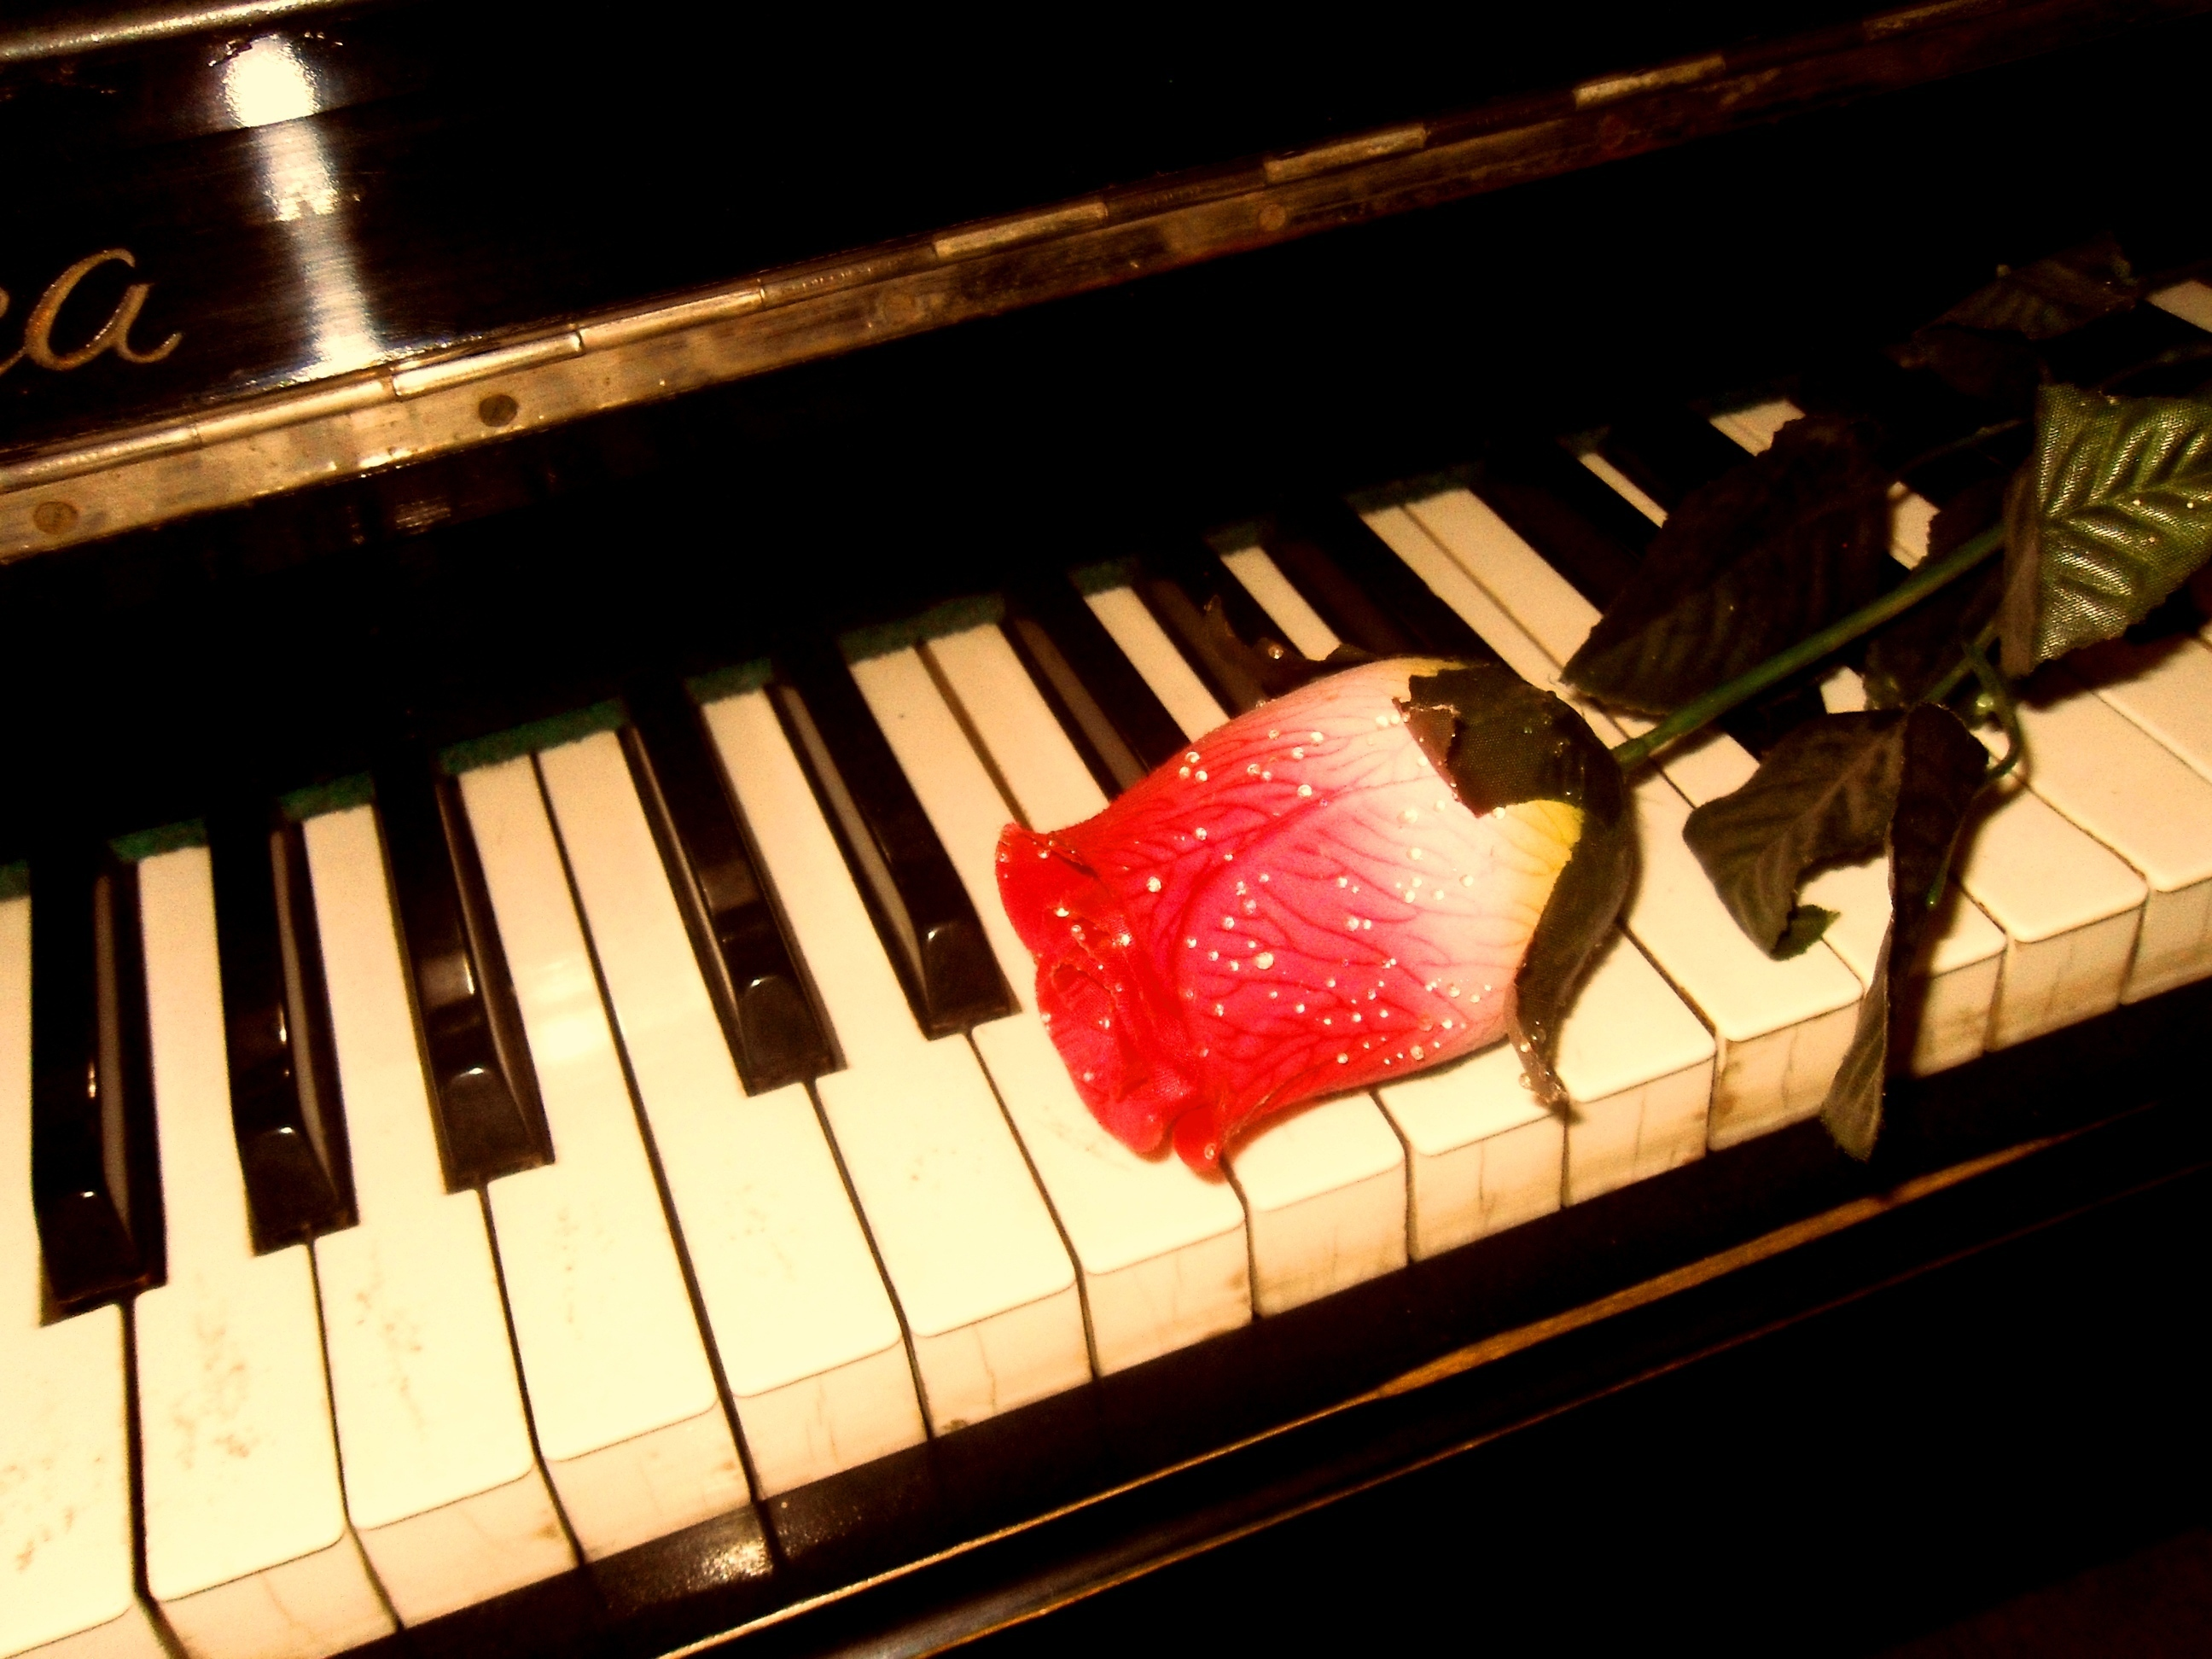 Piano hd wallpaper background image 2592x1944 id - Cool piano backgrounds ...